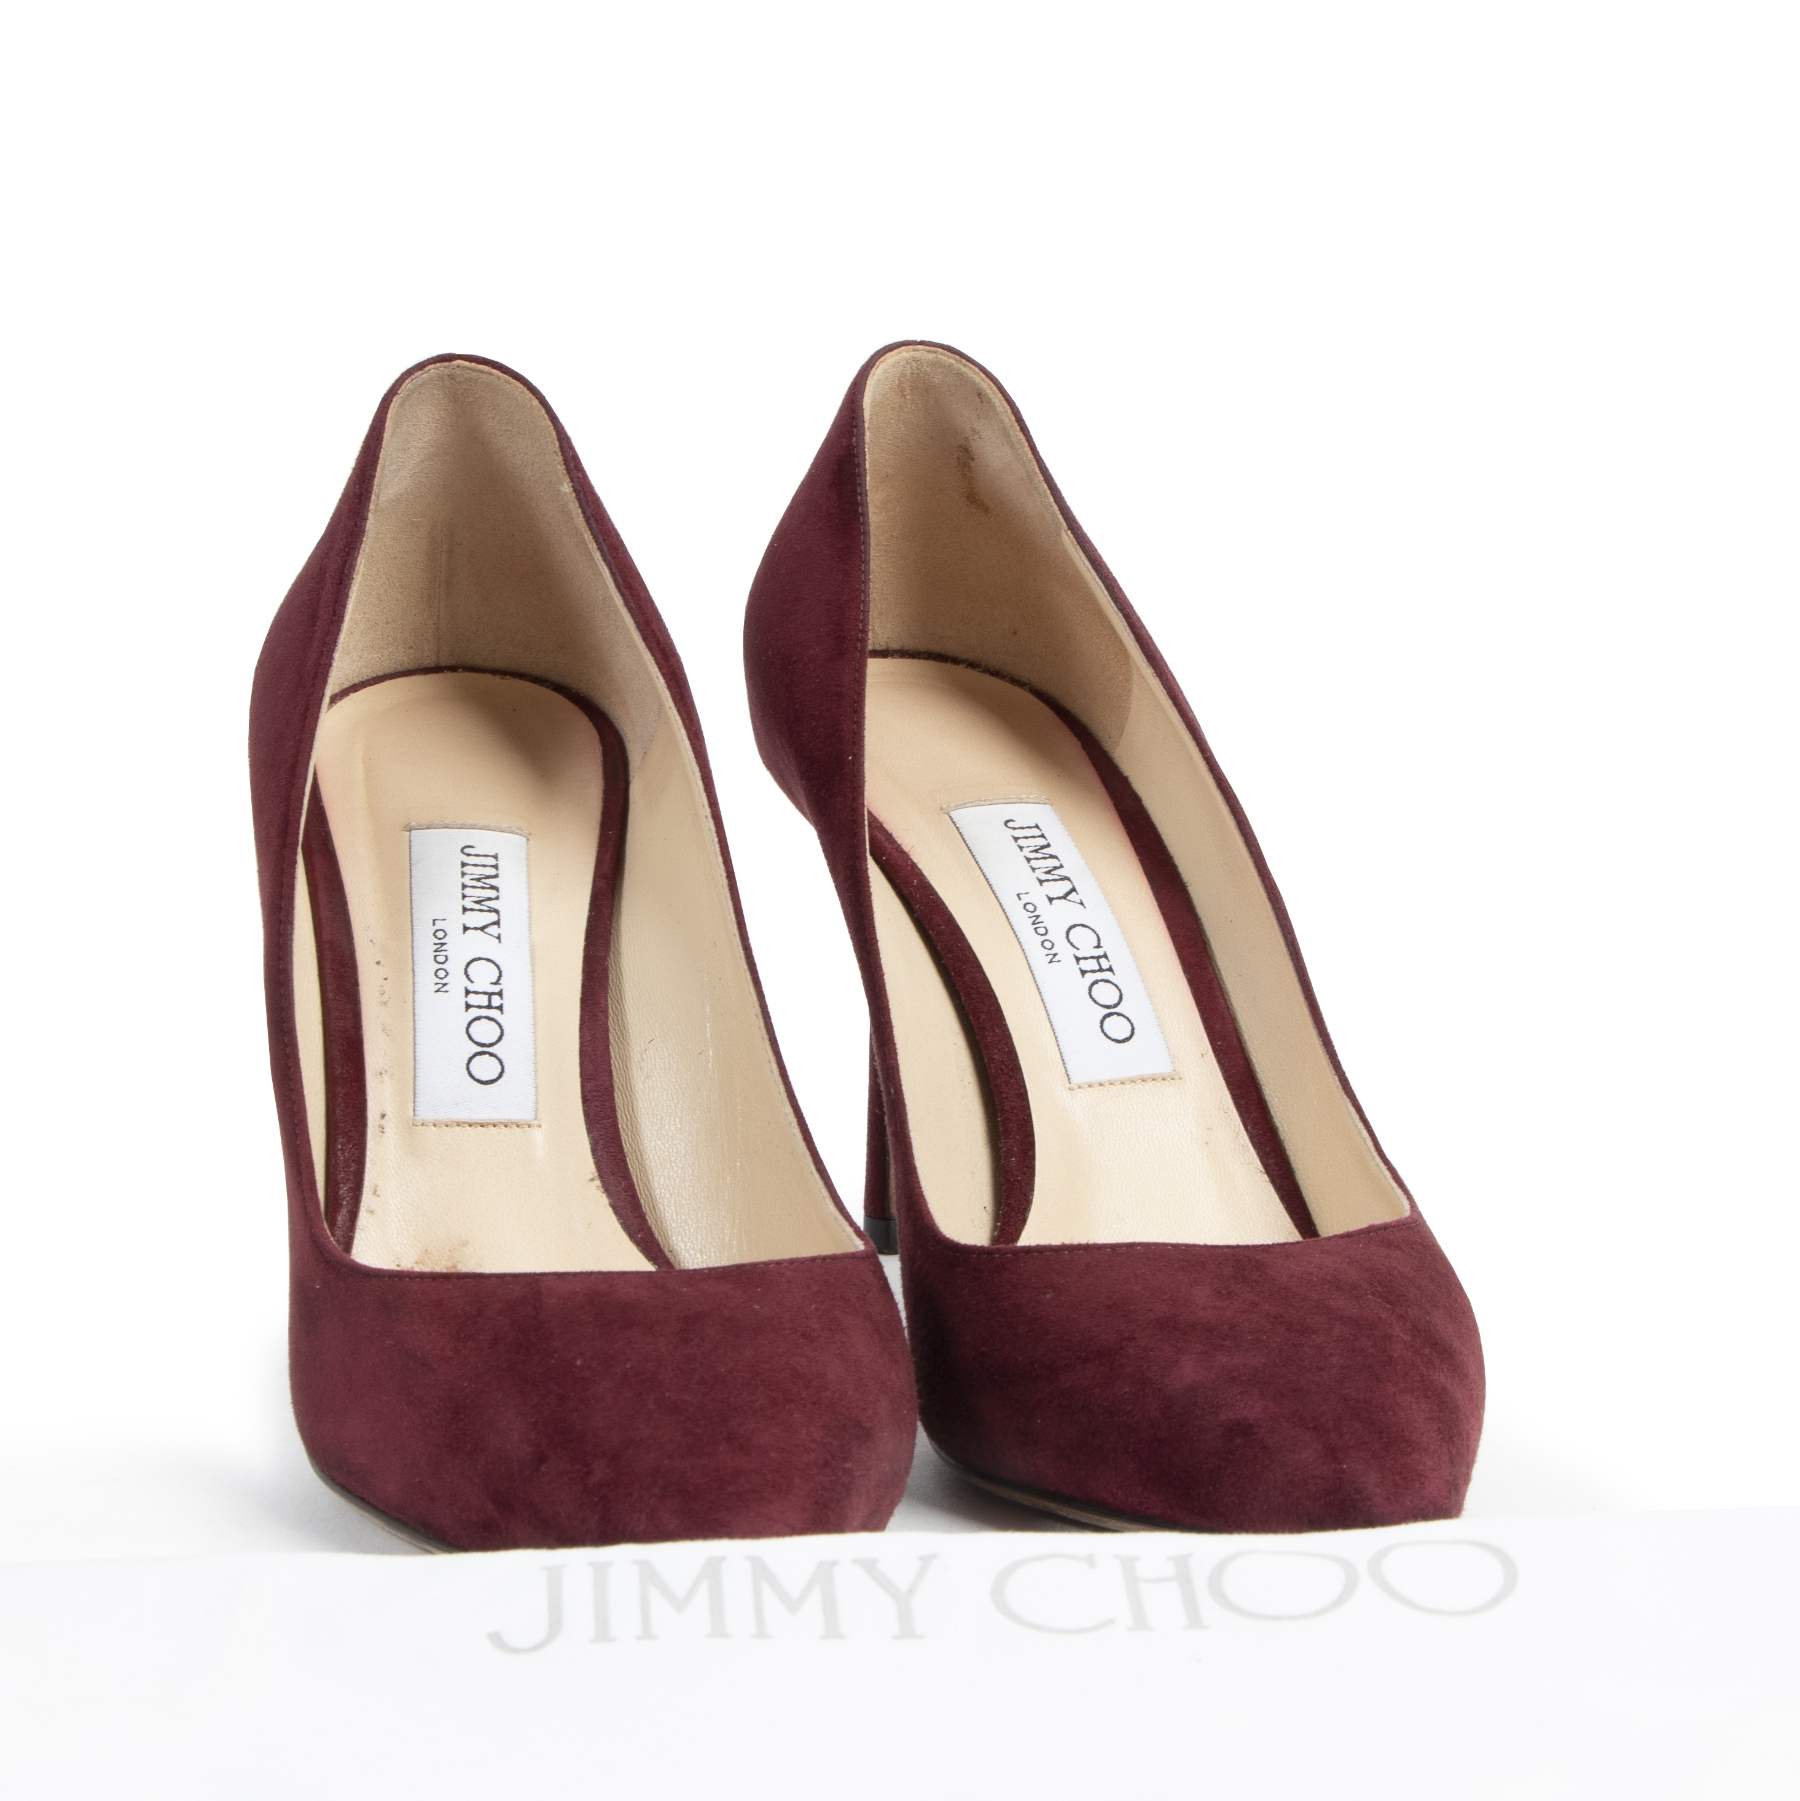 Jimmy Choo Bordeaux Suede Romy Pumps 100% authentic designer bags for the best price